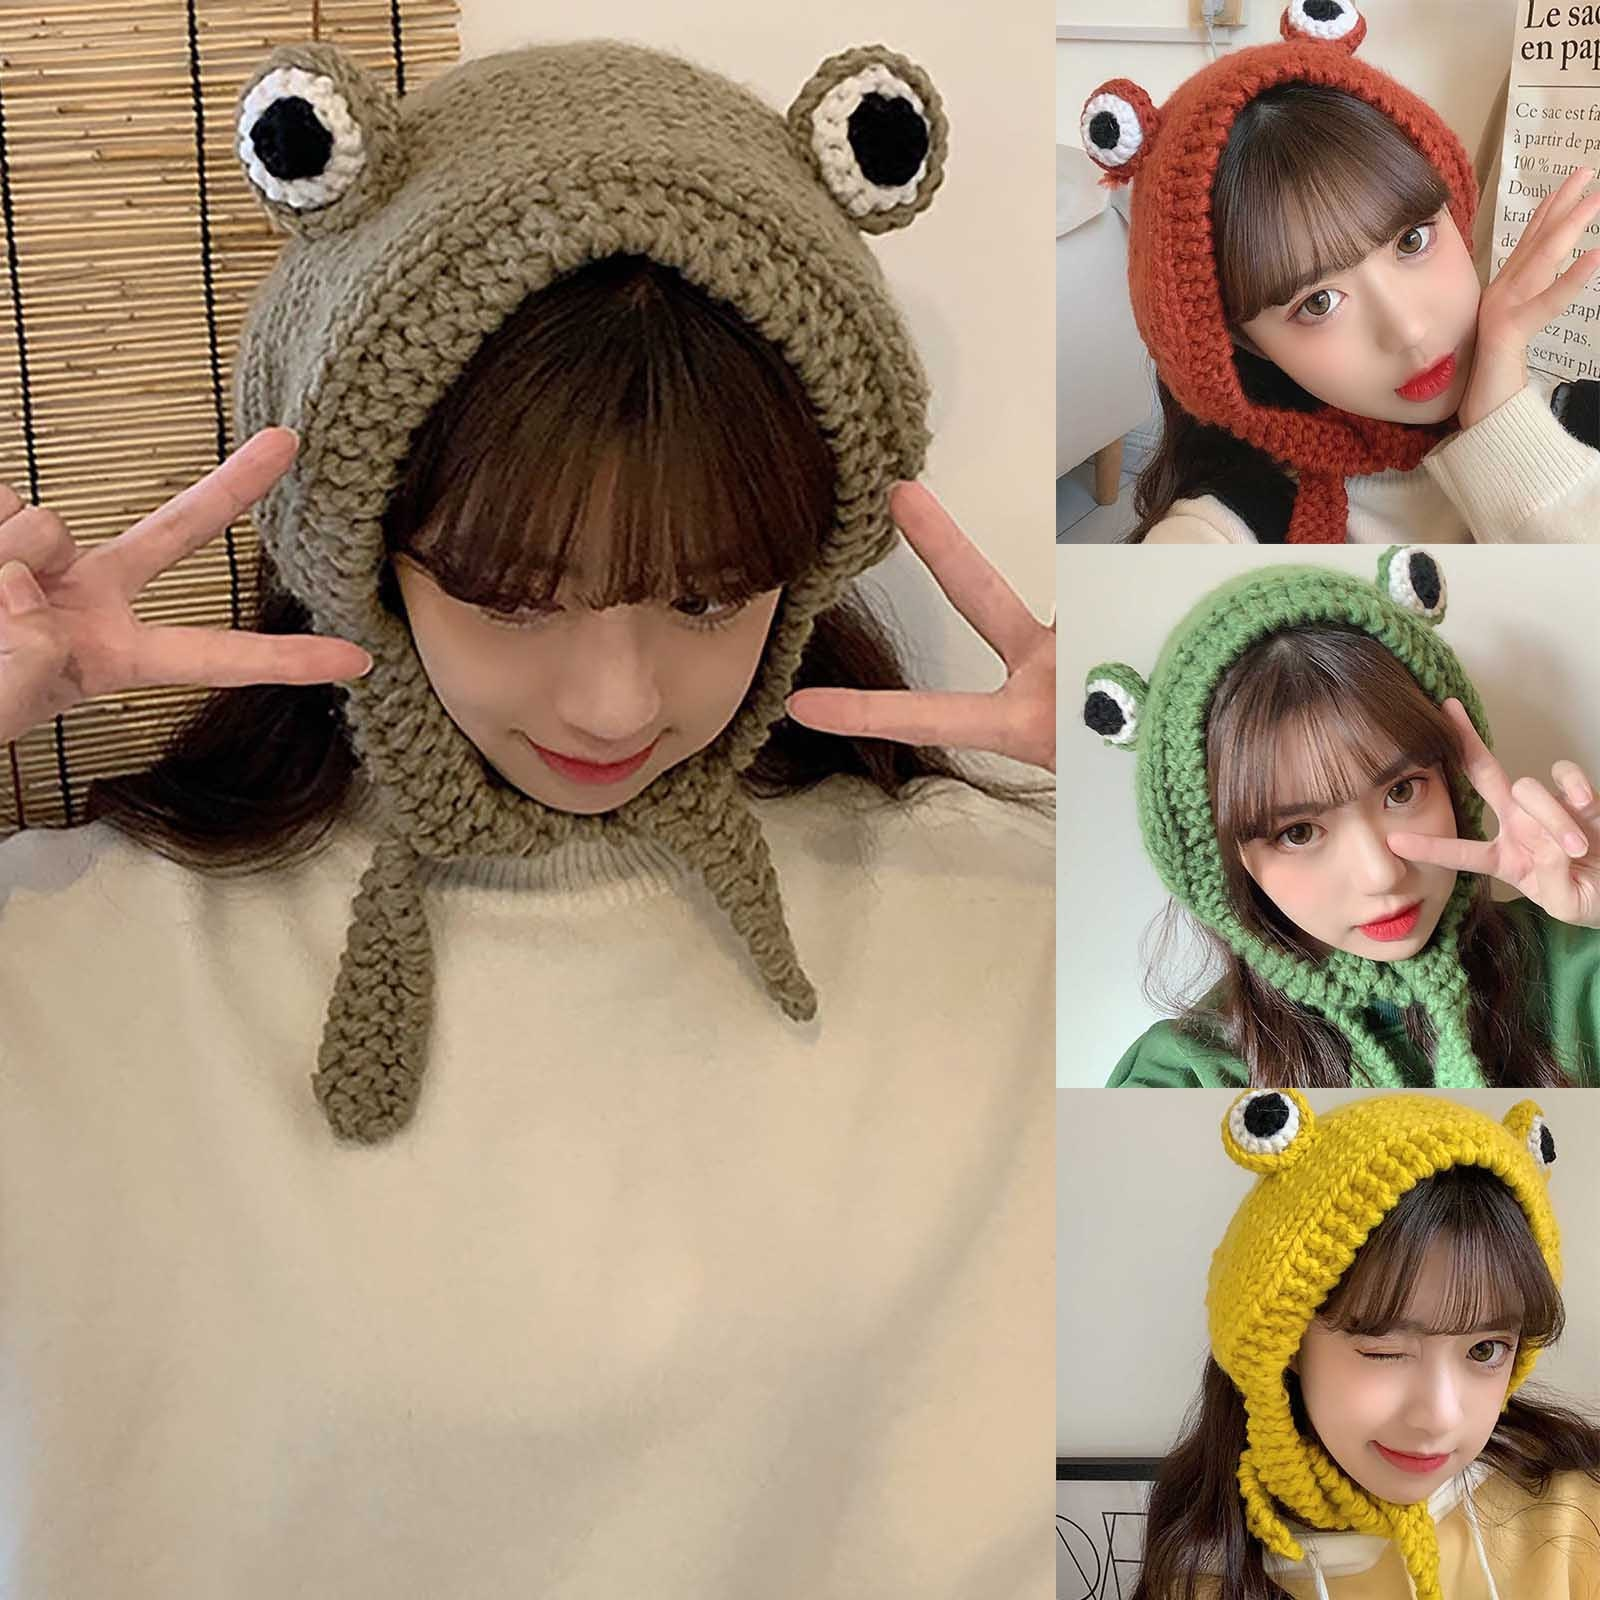 Frog Hat Beanies Knitted Winter Hat Solid Hip-hop Skullies Knitted Hat Cap Costume Accessory Gifts W